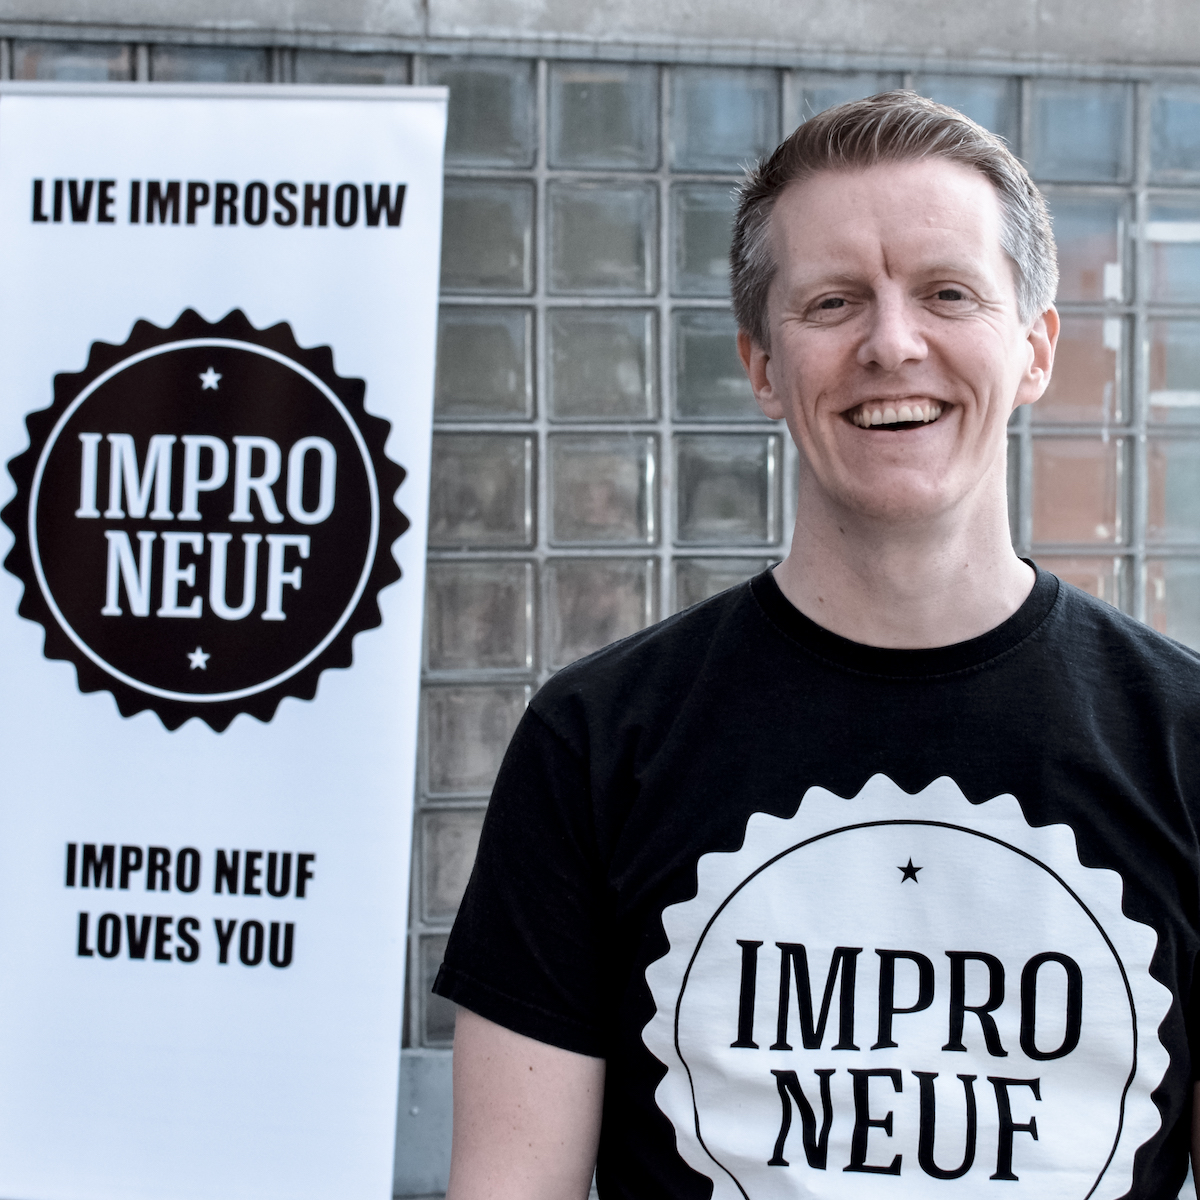 TERJE BREVIK - WORKSHOPS & PLANNING  Terje is the guy who started the festival back in 2017, in addition to being the leader of Impro Neuf since the very beginning (and stepping down this year). He keeps busy organizing, teaching, coaching and performing in Norway and abroad, despite having an unpronouncable name. He'll respond to anything though. Catch him on stage with Marienettes, Bad Booty Call and the lovely duo Pusekatt. Or falling off a small curb on his skateboard. Terje is also the founder of Tøyen Impro, an improv school for everyone, and MindMeld, an applied improv company. If you want to read his mind please visit  medium.com/@terje.brevik .